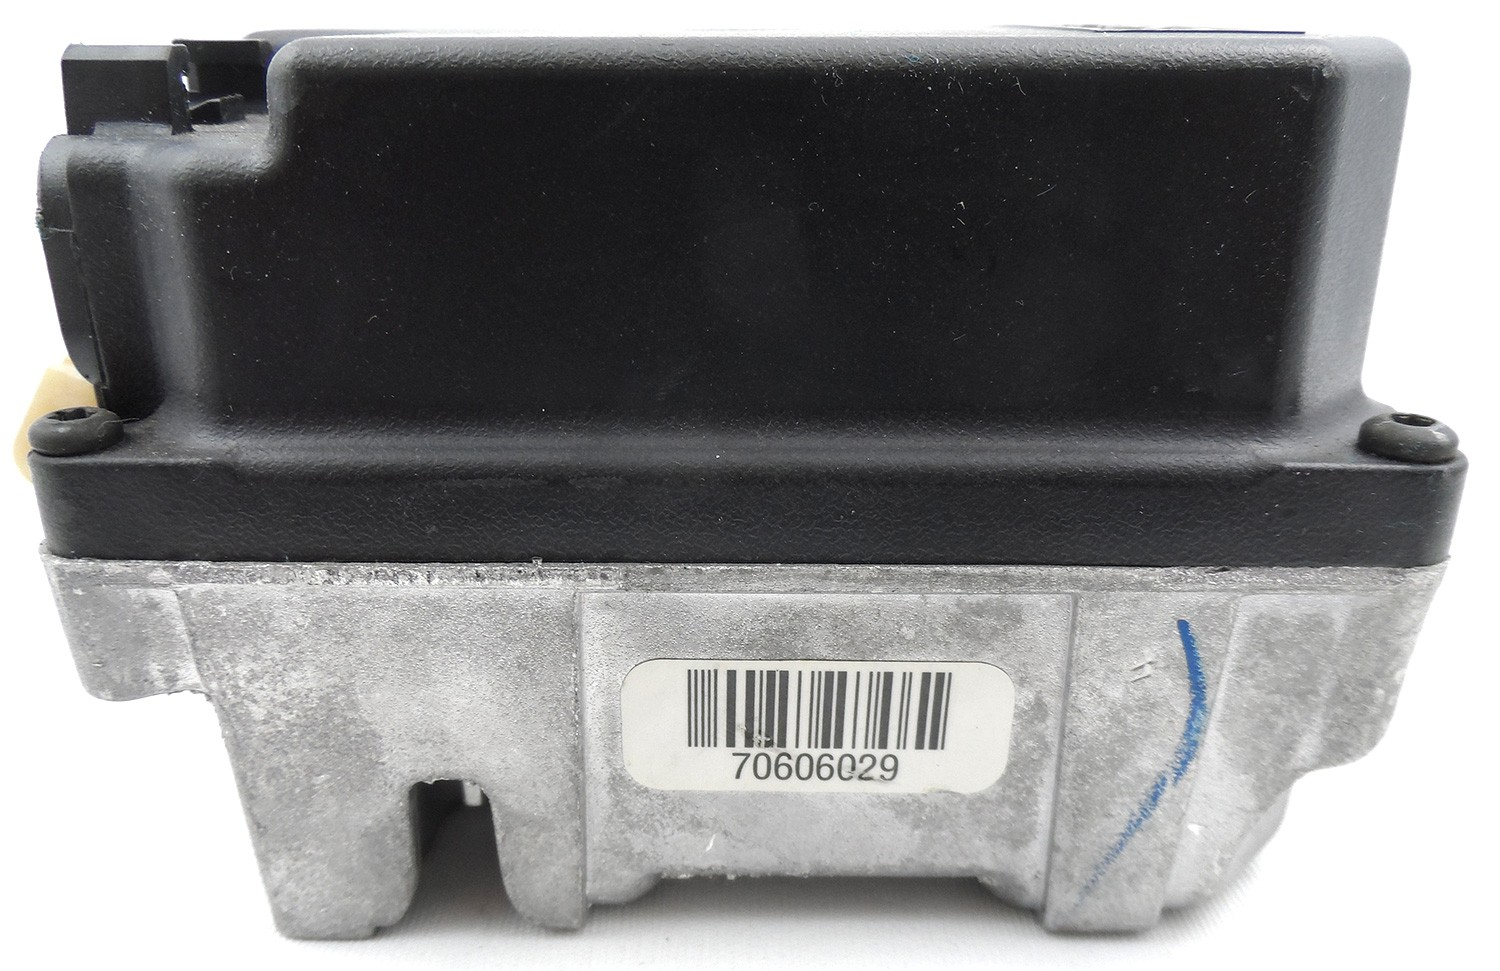 new oem cruise control module 12575408 for buick chevy pontiac oldsnew oem cruise control module 12575408 for buick chevy pontiac olds saturn 99 05